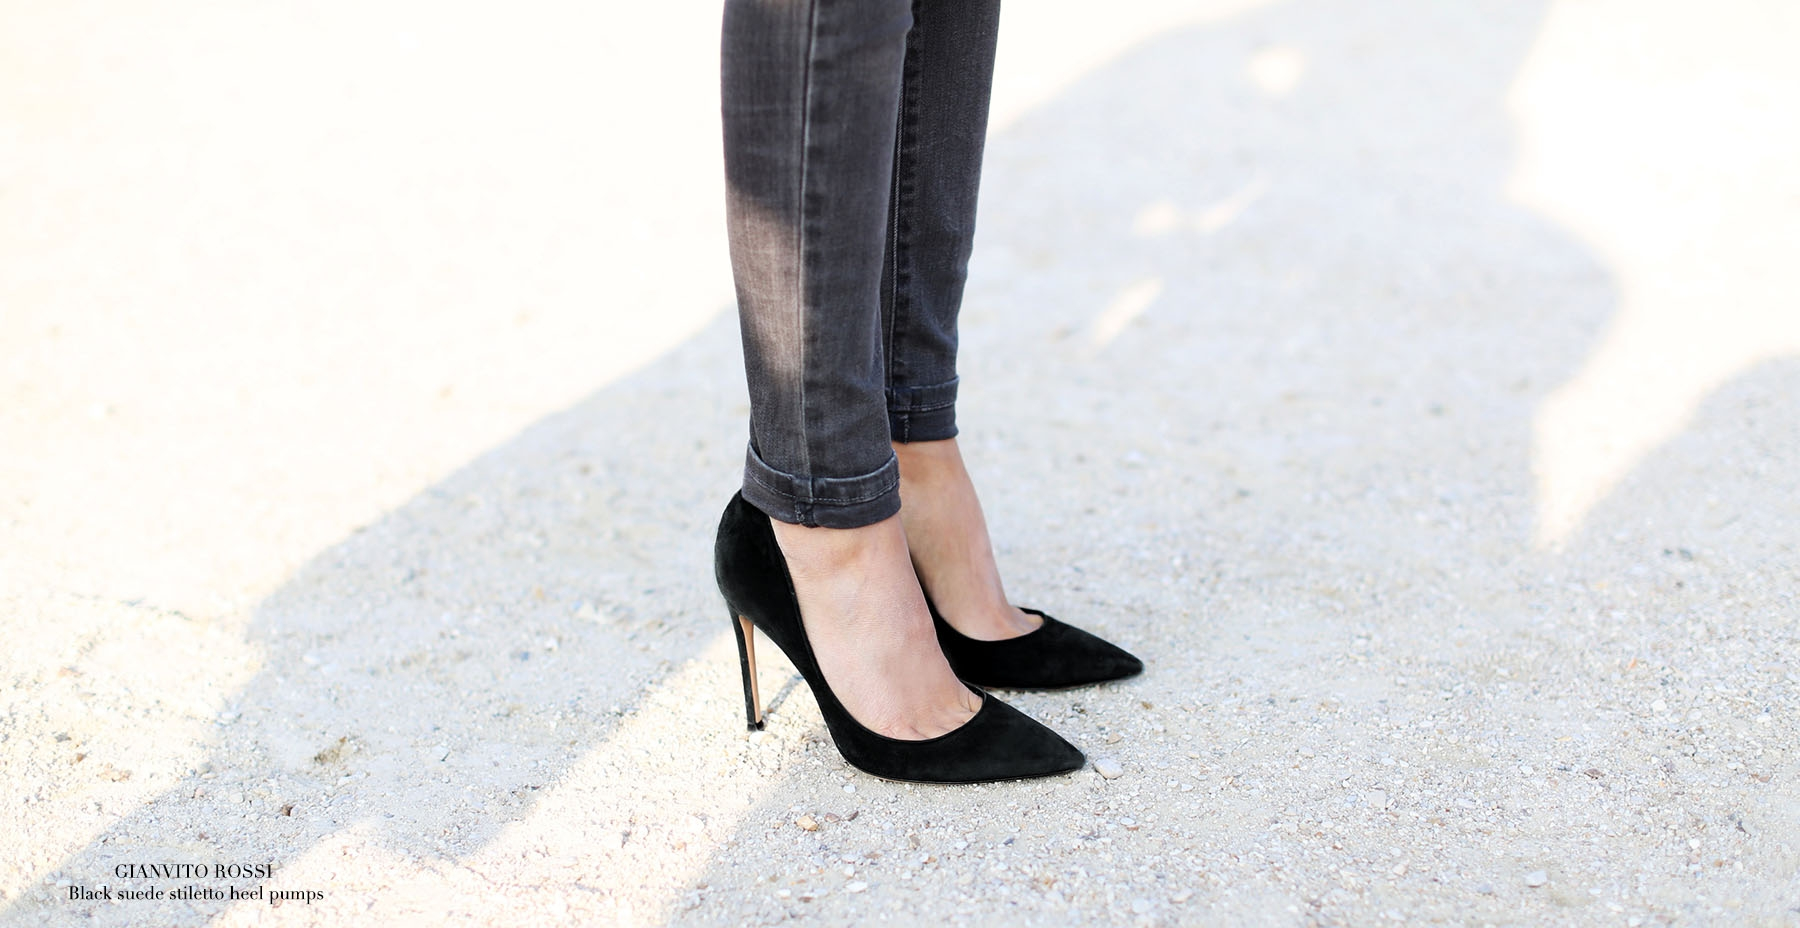 GIANVITO ROSSI Black suede high heel pointy toe pumps Retail price 500€ Size 37